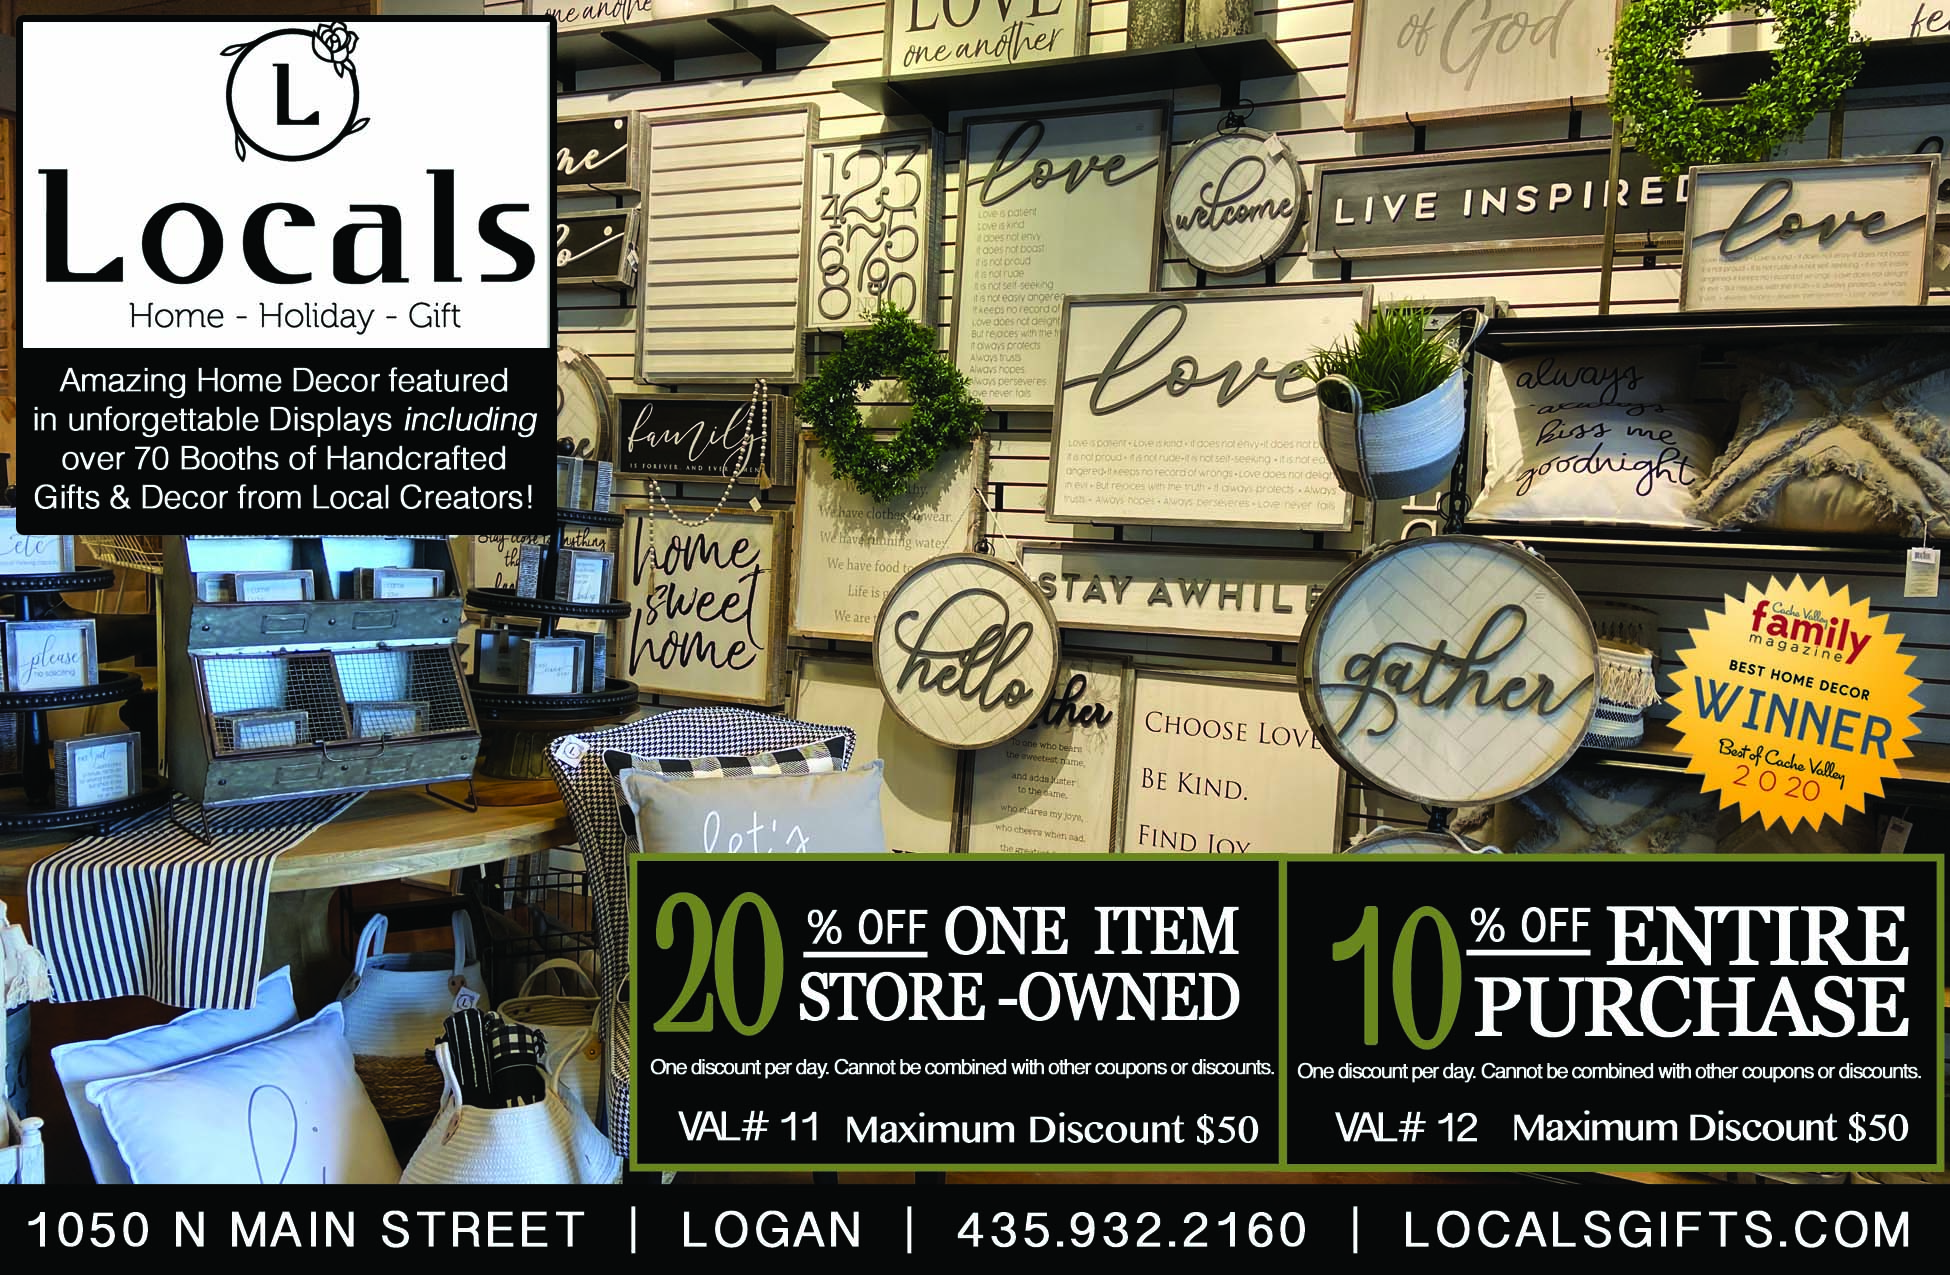 Locals Home Decor Store Logan